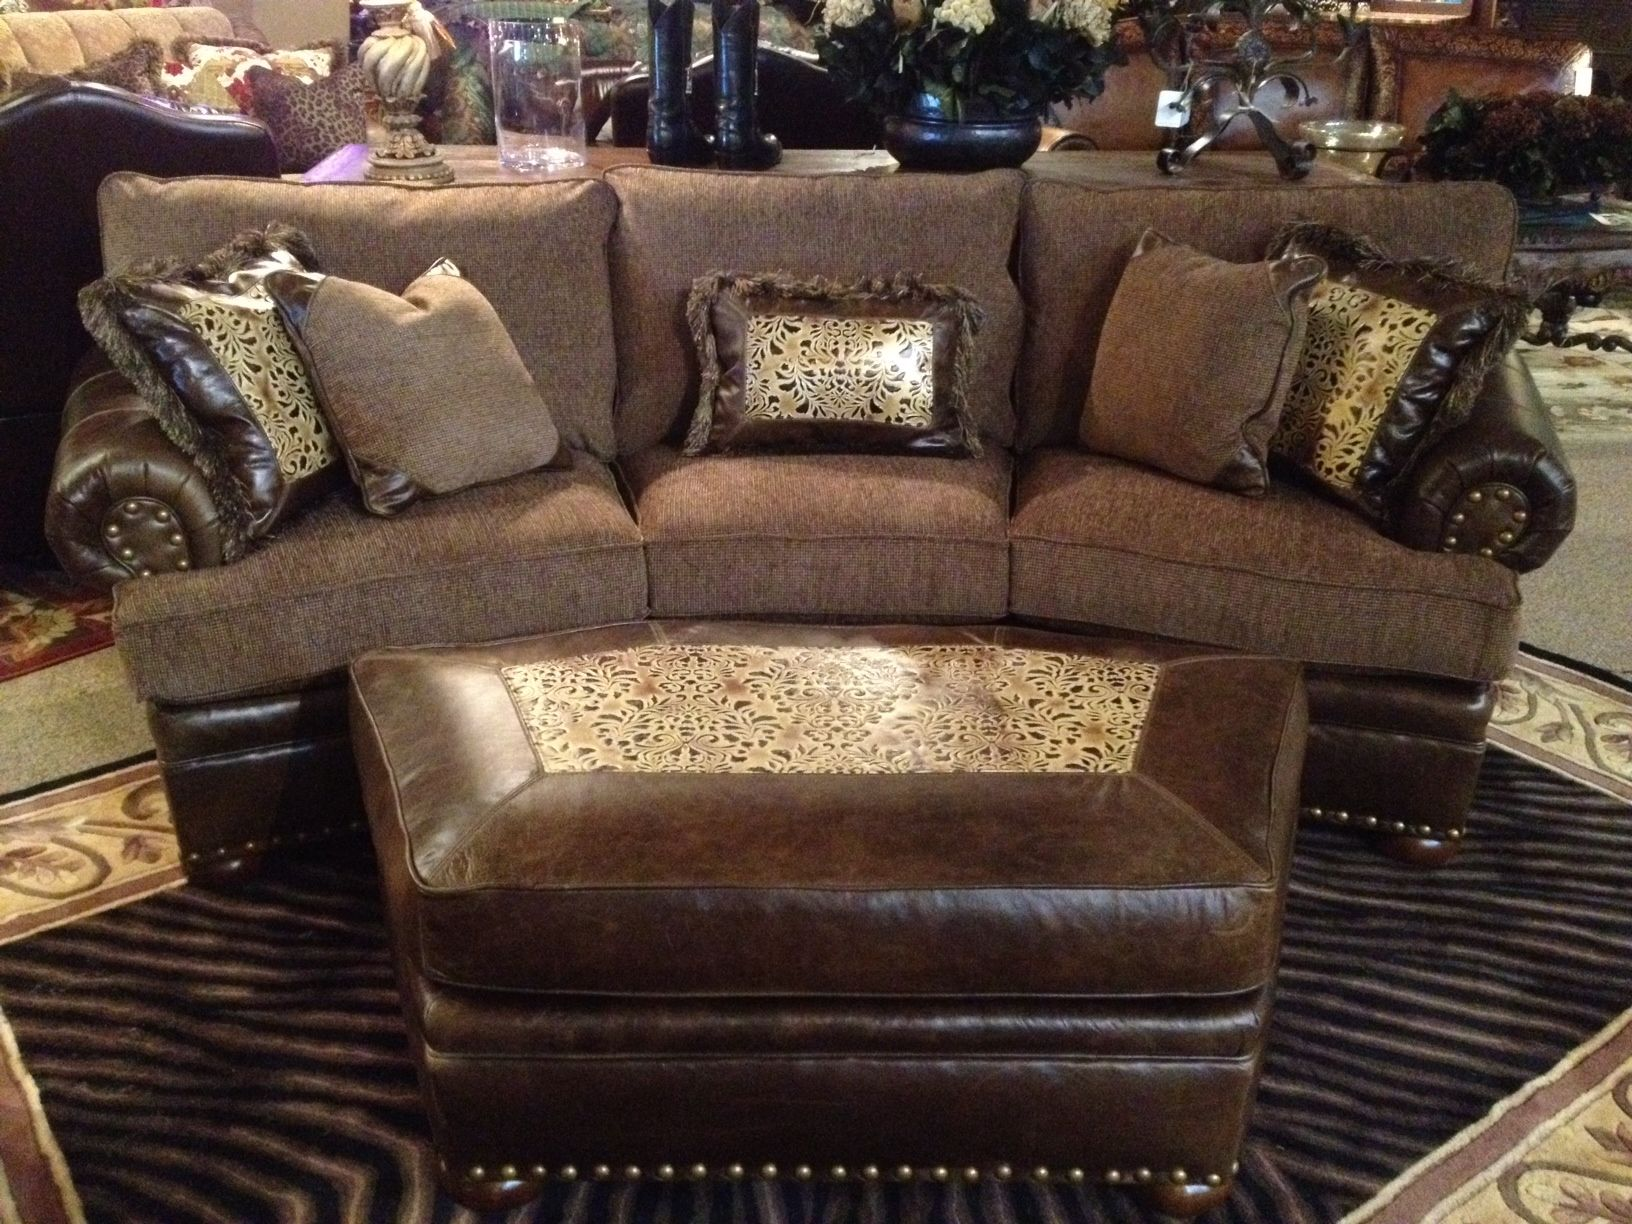 This amazing sofa just displayed on the showroom floor ...